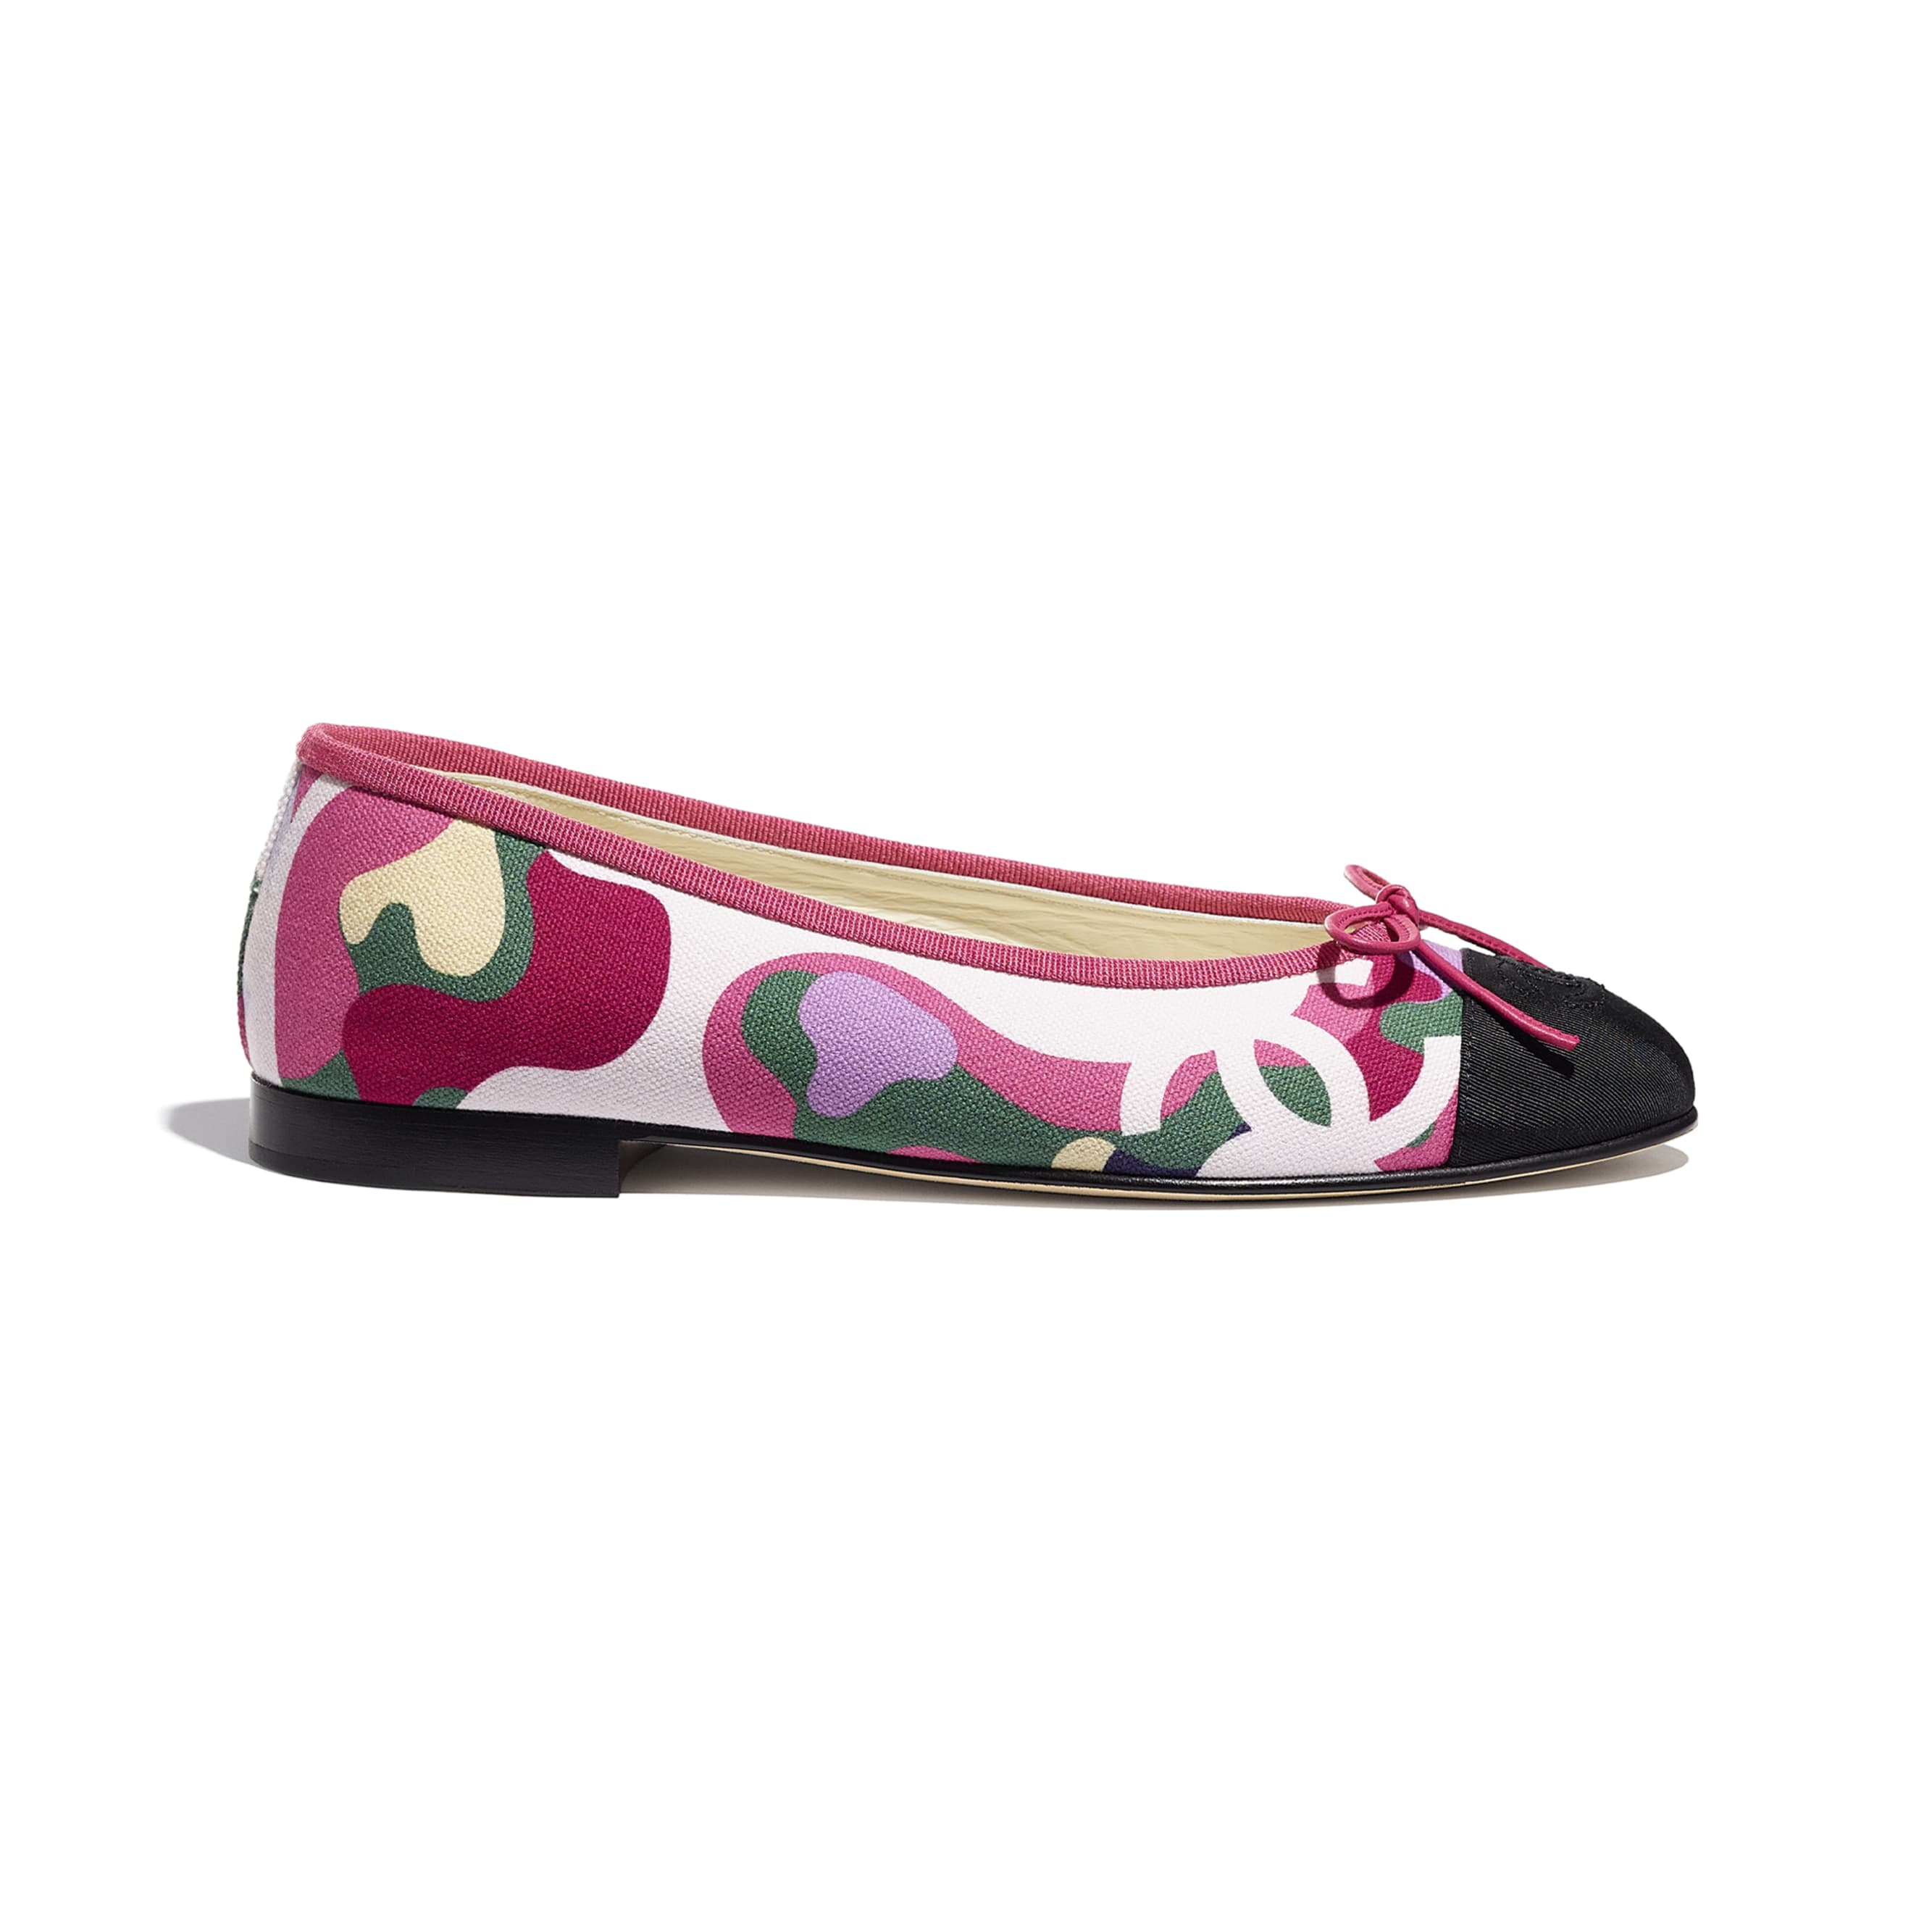 Flats - Pink, Green & Black - Cotton & Grosgrain - CHANEL - Default view - see standard sized version